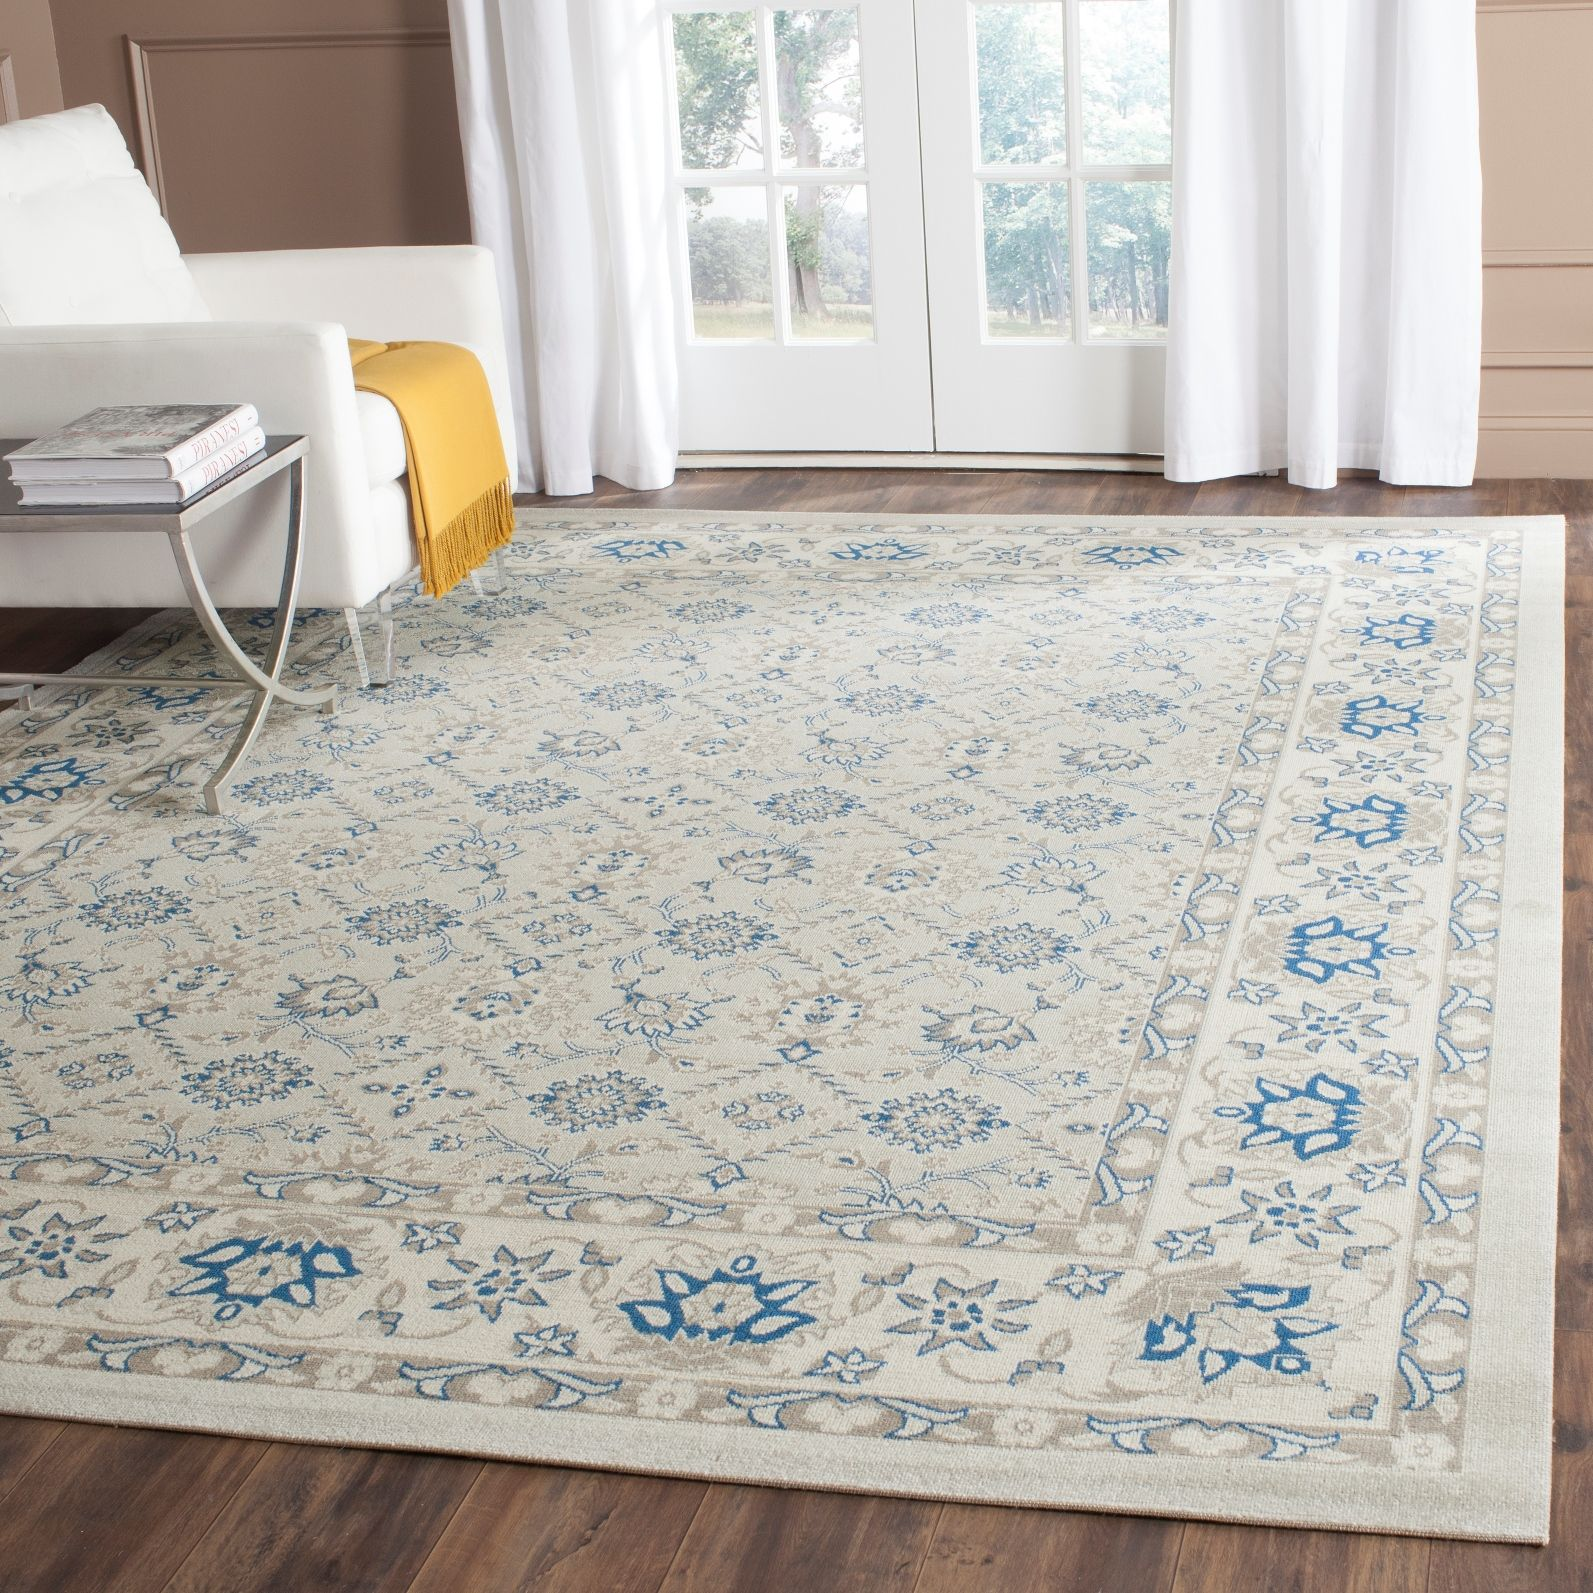 light blue / ivory safavieh power loomed cotton area rugs